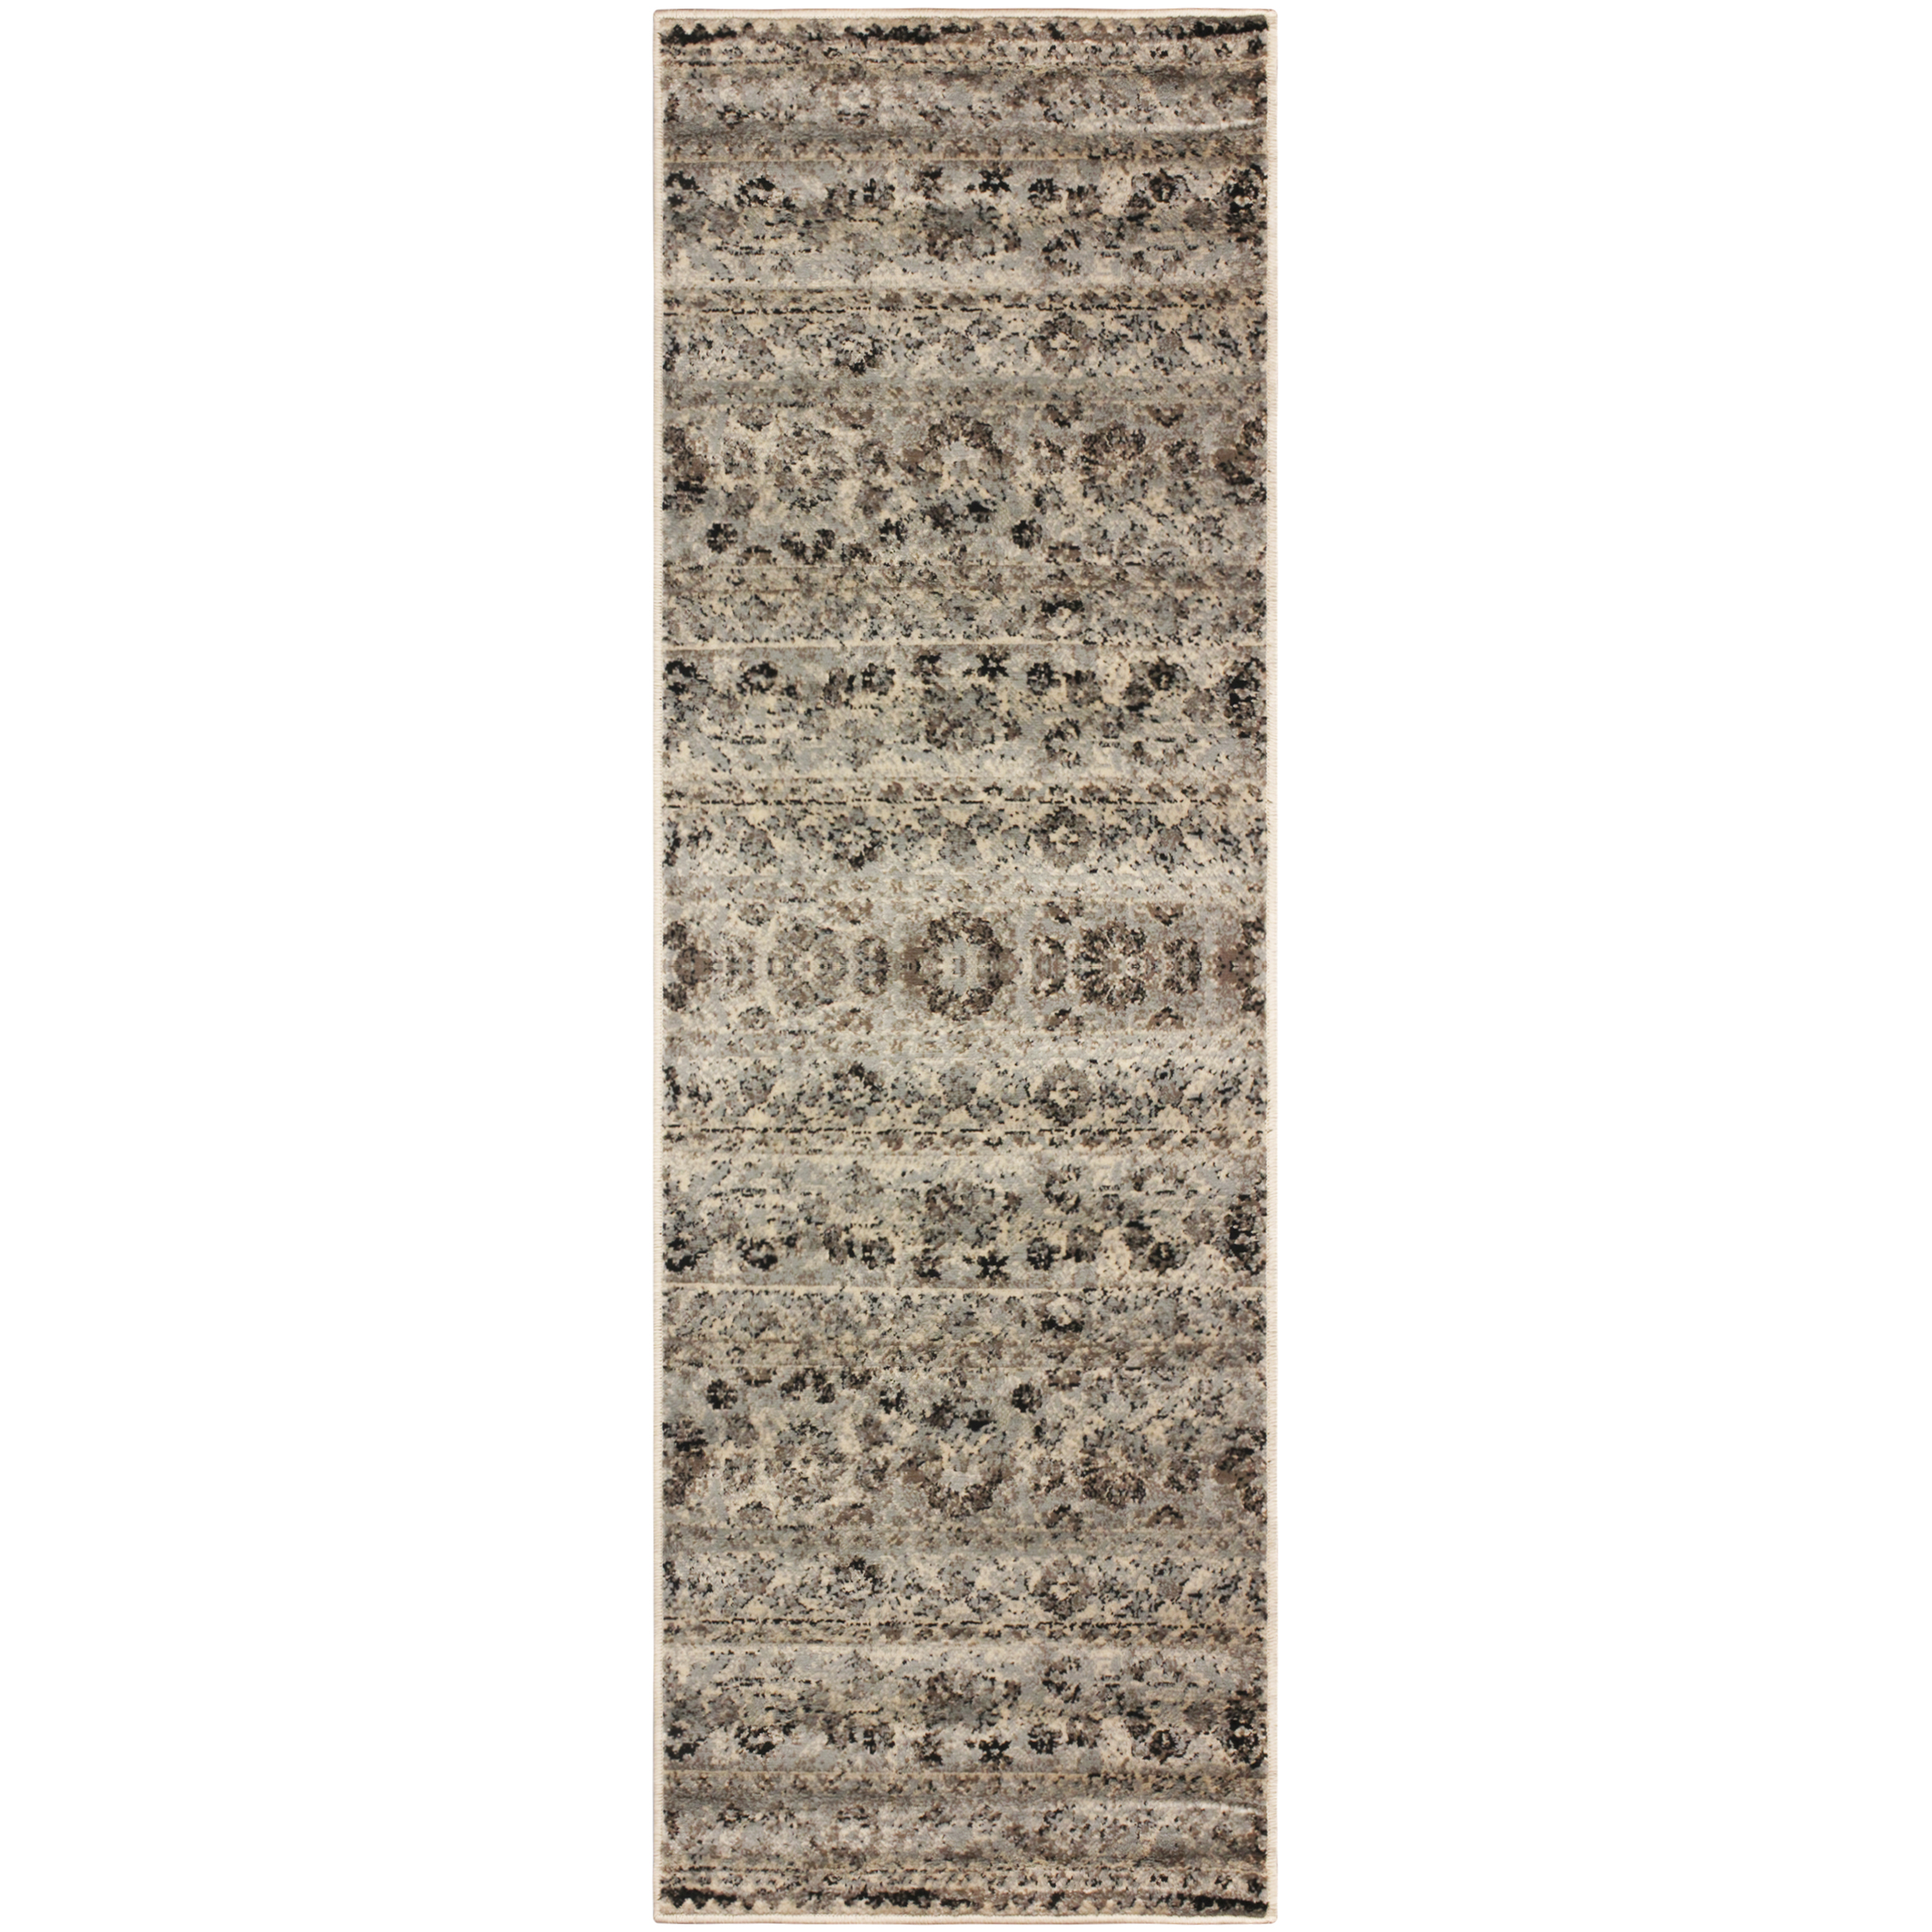 Fawn Floral Area Rug Collection Walmart Com